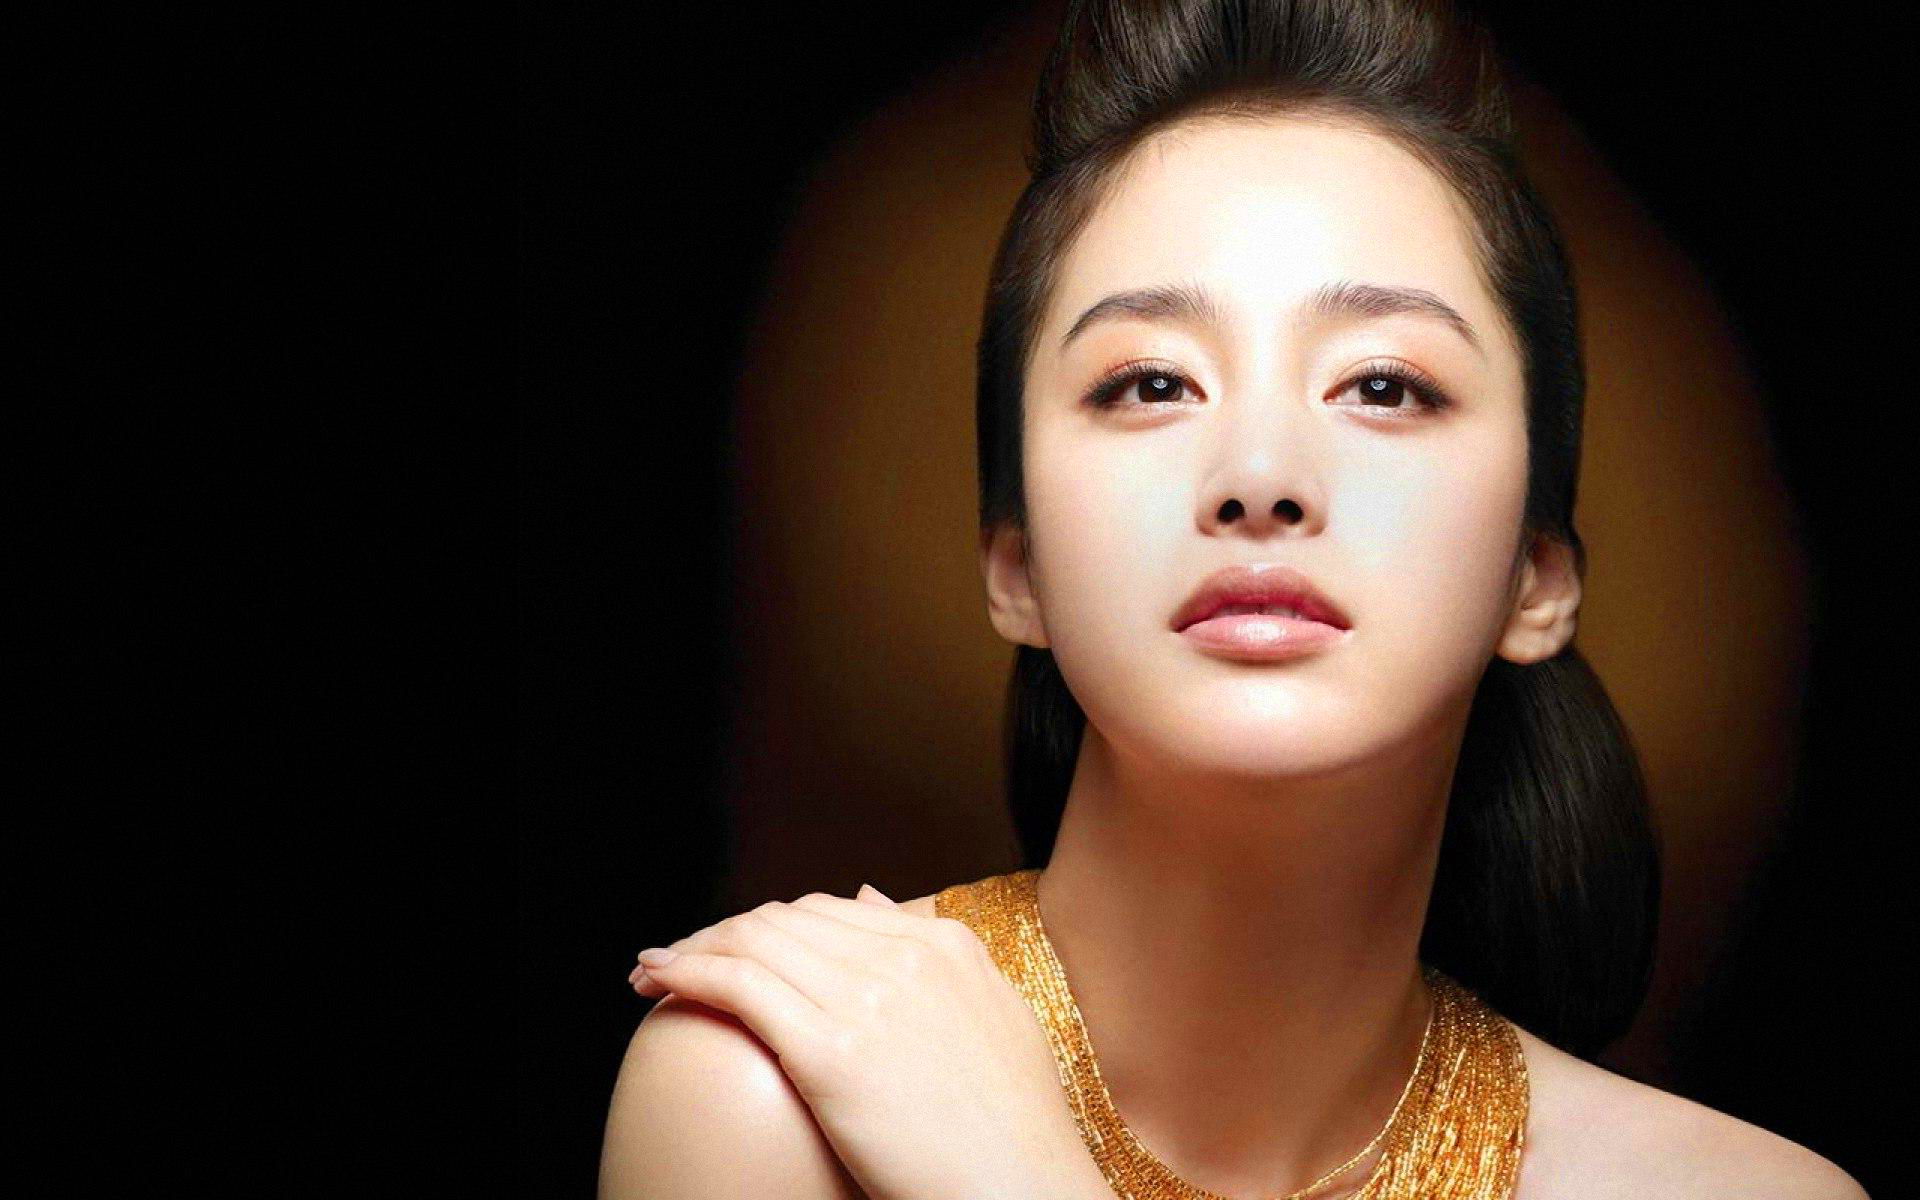 kim-tae-hee-beauty-south-korean-actress-picture-wallpaper-dbtlq.jpg